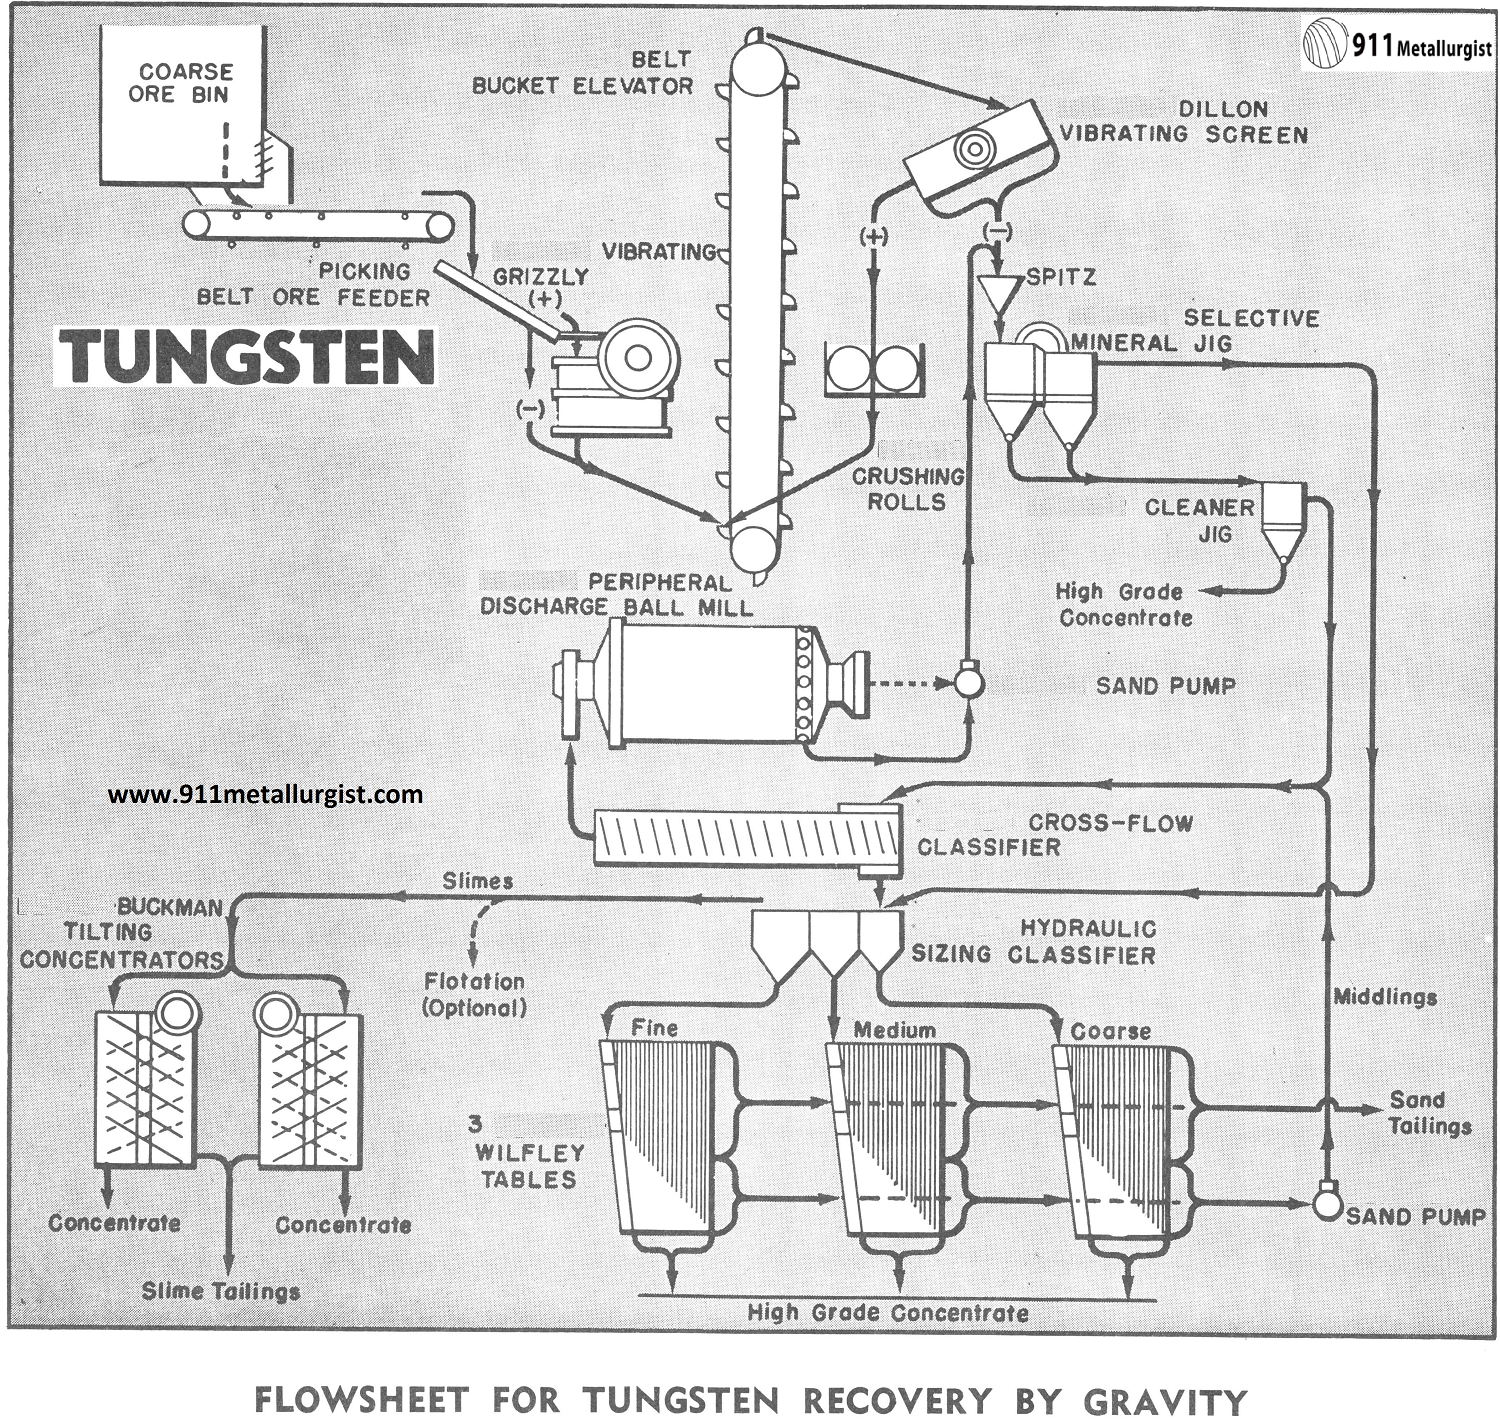 Beneficiation of Tungsten Recovery by Gravity